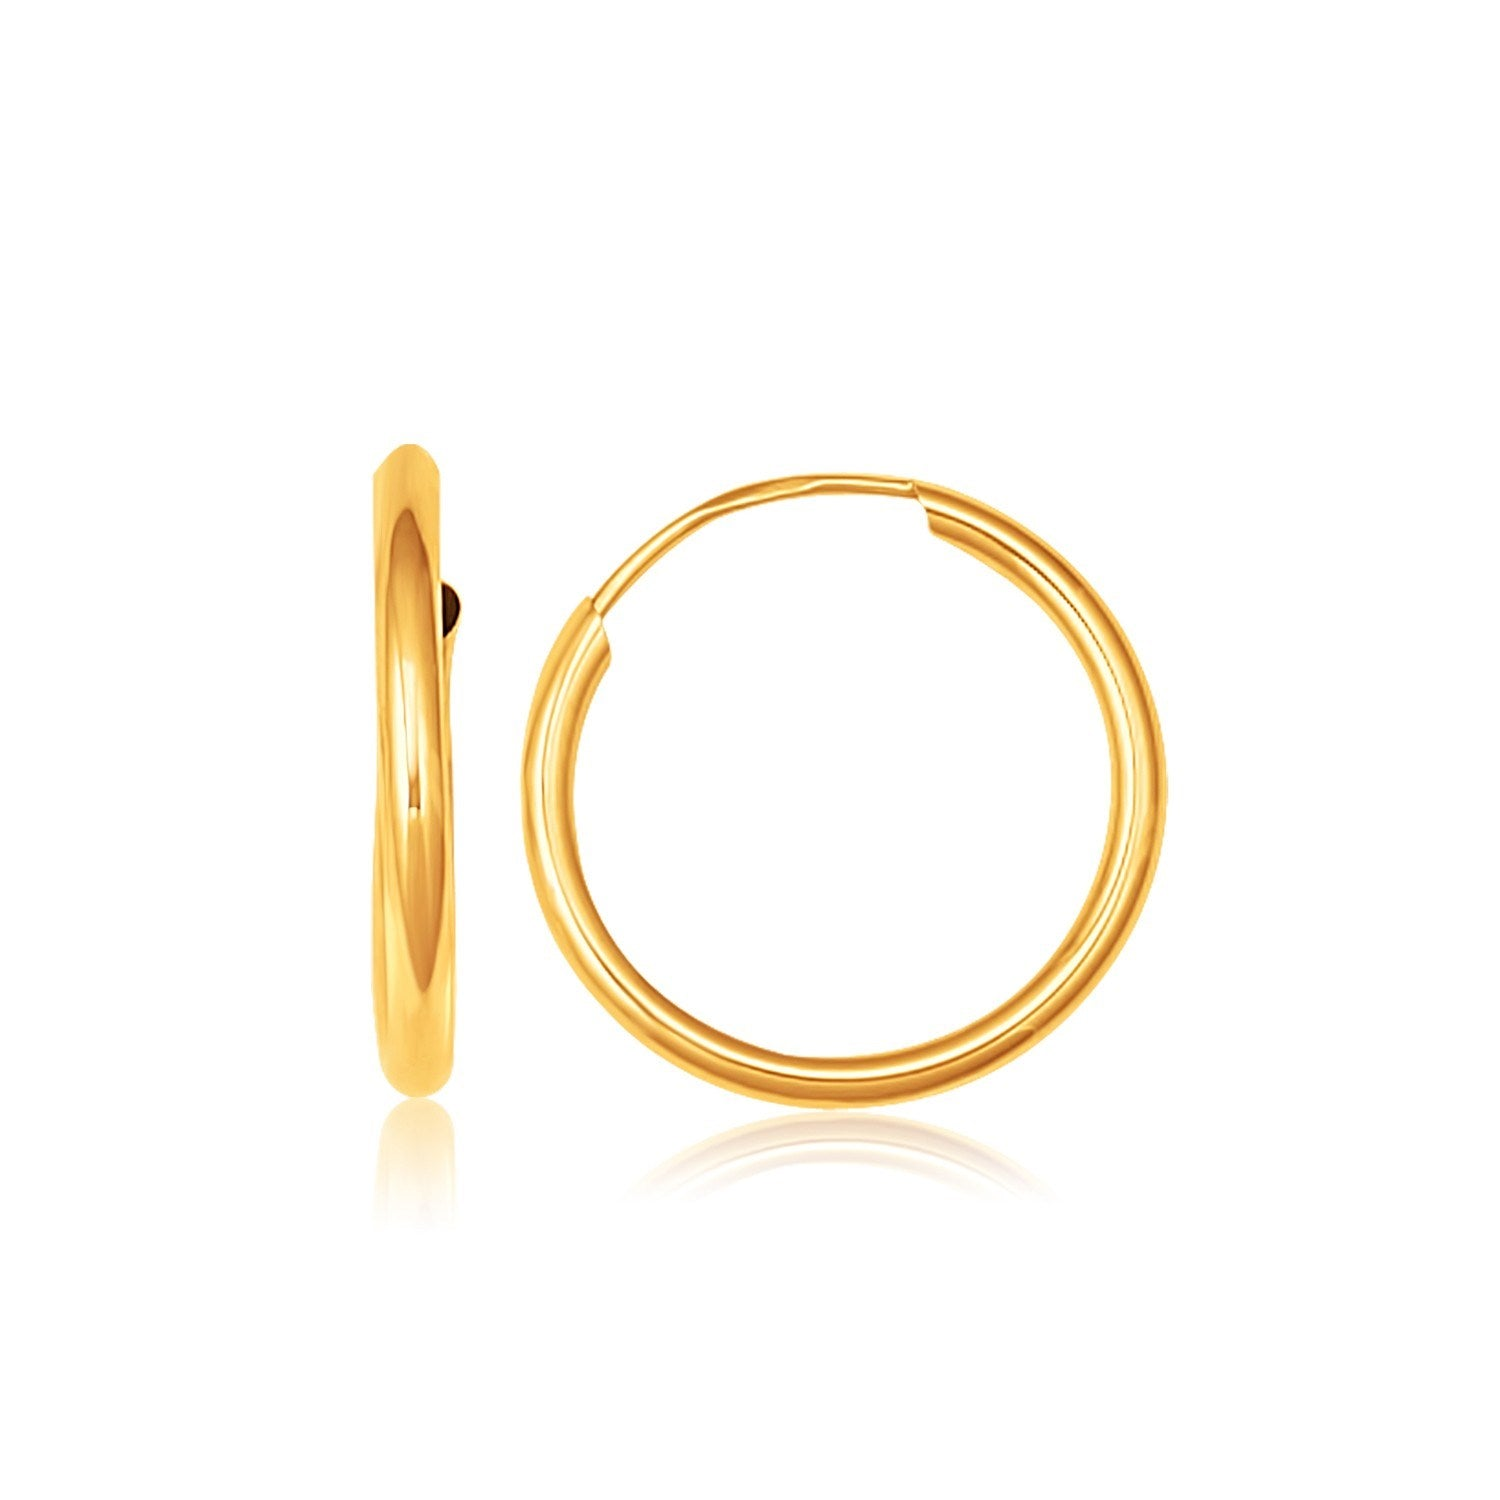 10K Yellow Gold Polished Endless Hoop Earrings (5/8 inch Diameter)